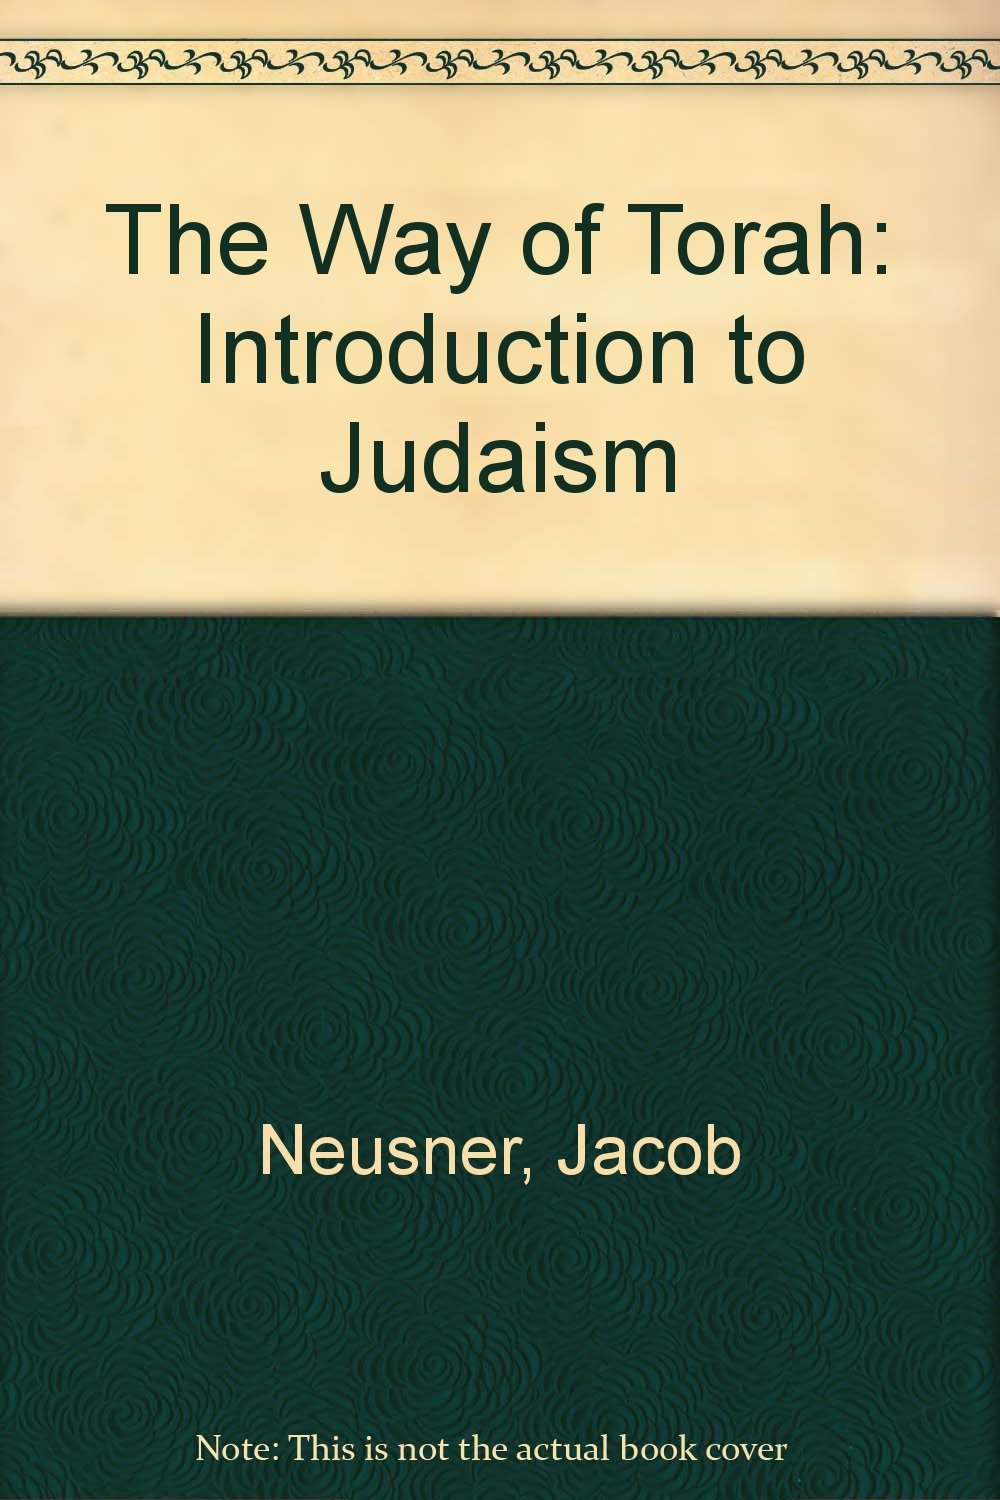 The Way of Torah: An Introduction to Judaism (The Religious Life of Man Series), Neusner, Jacob